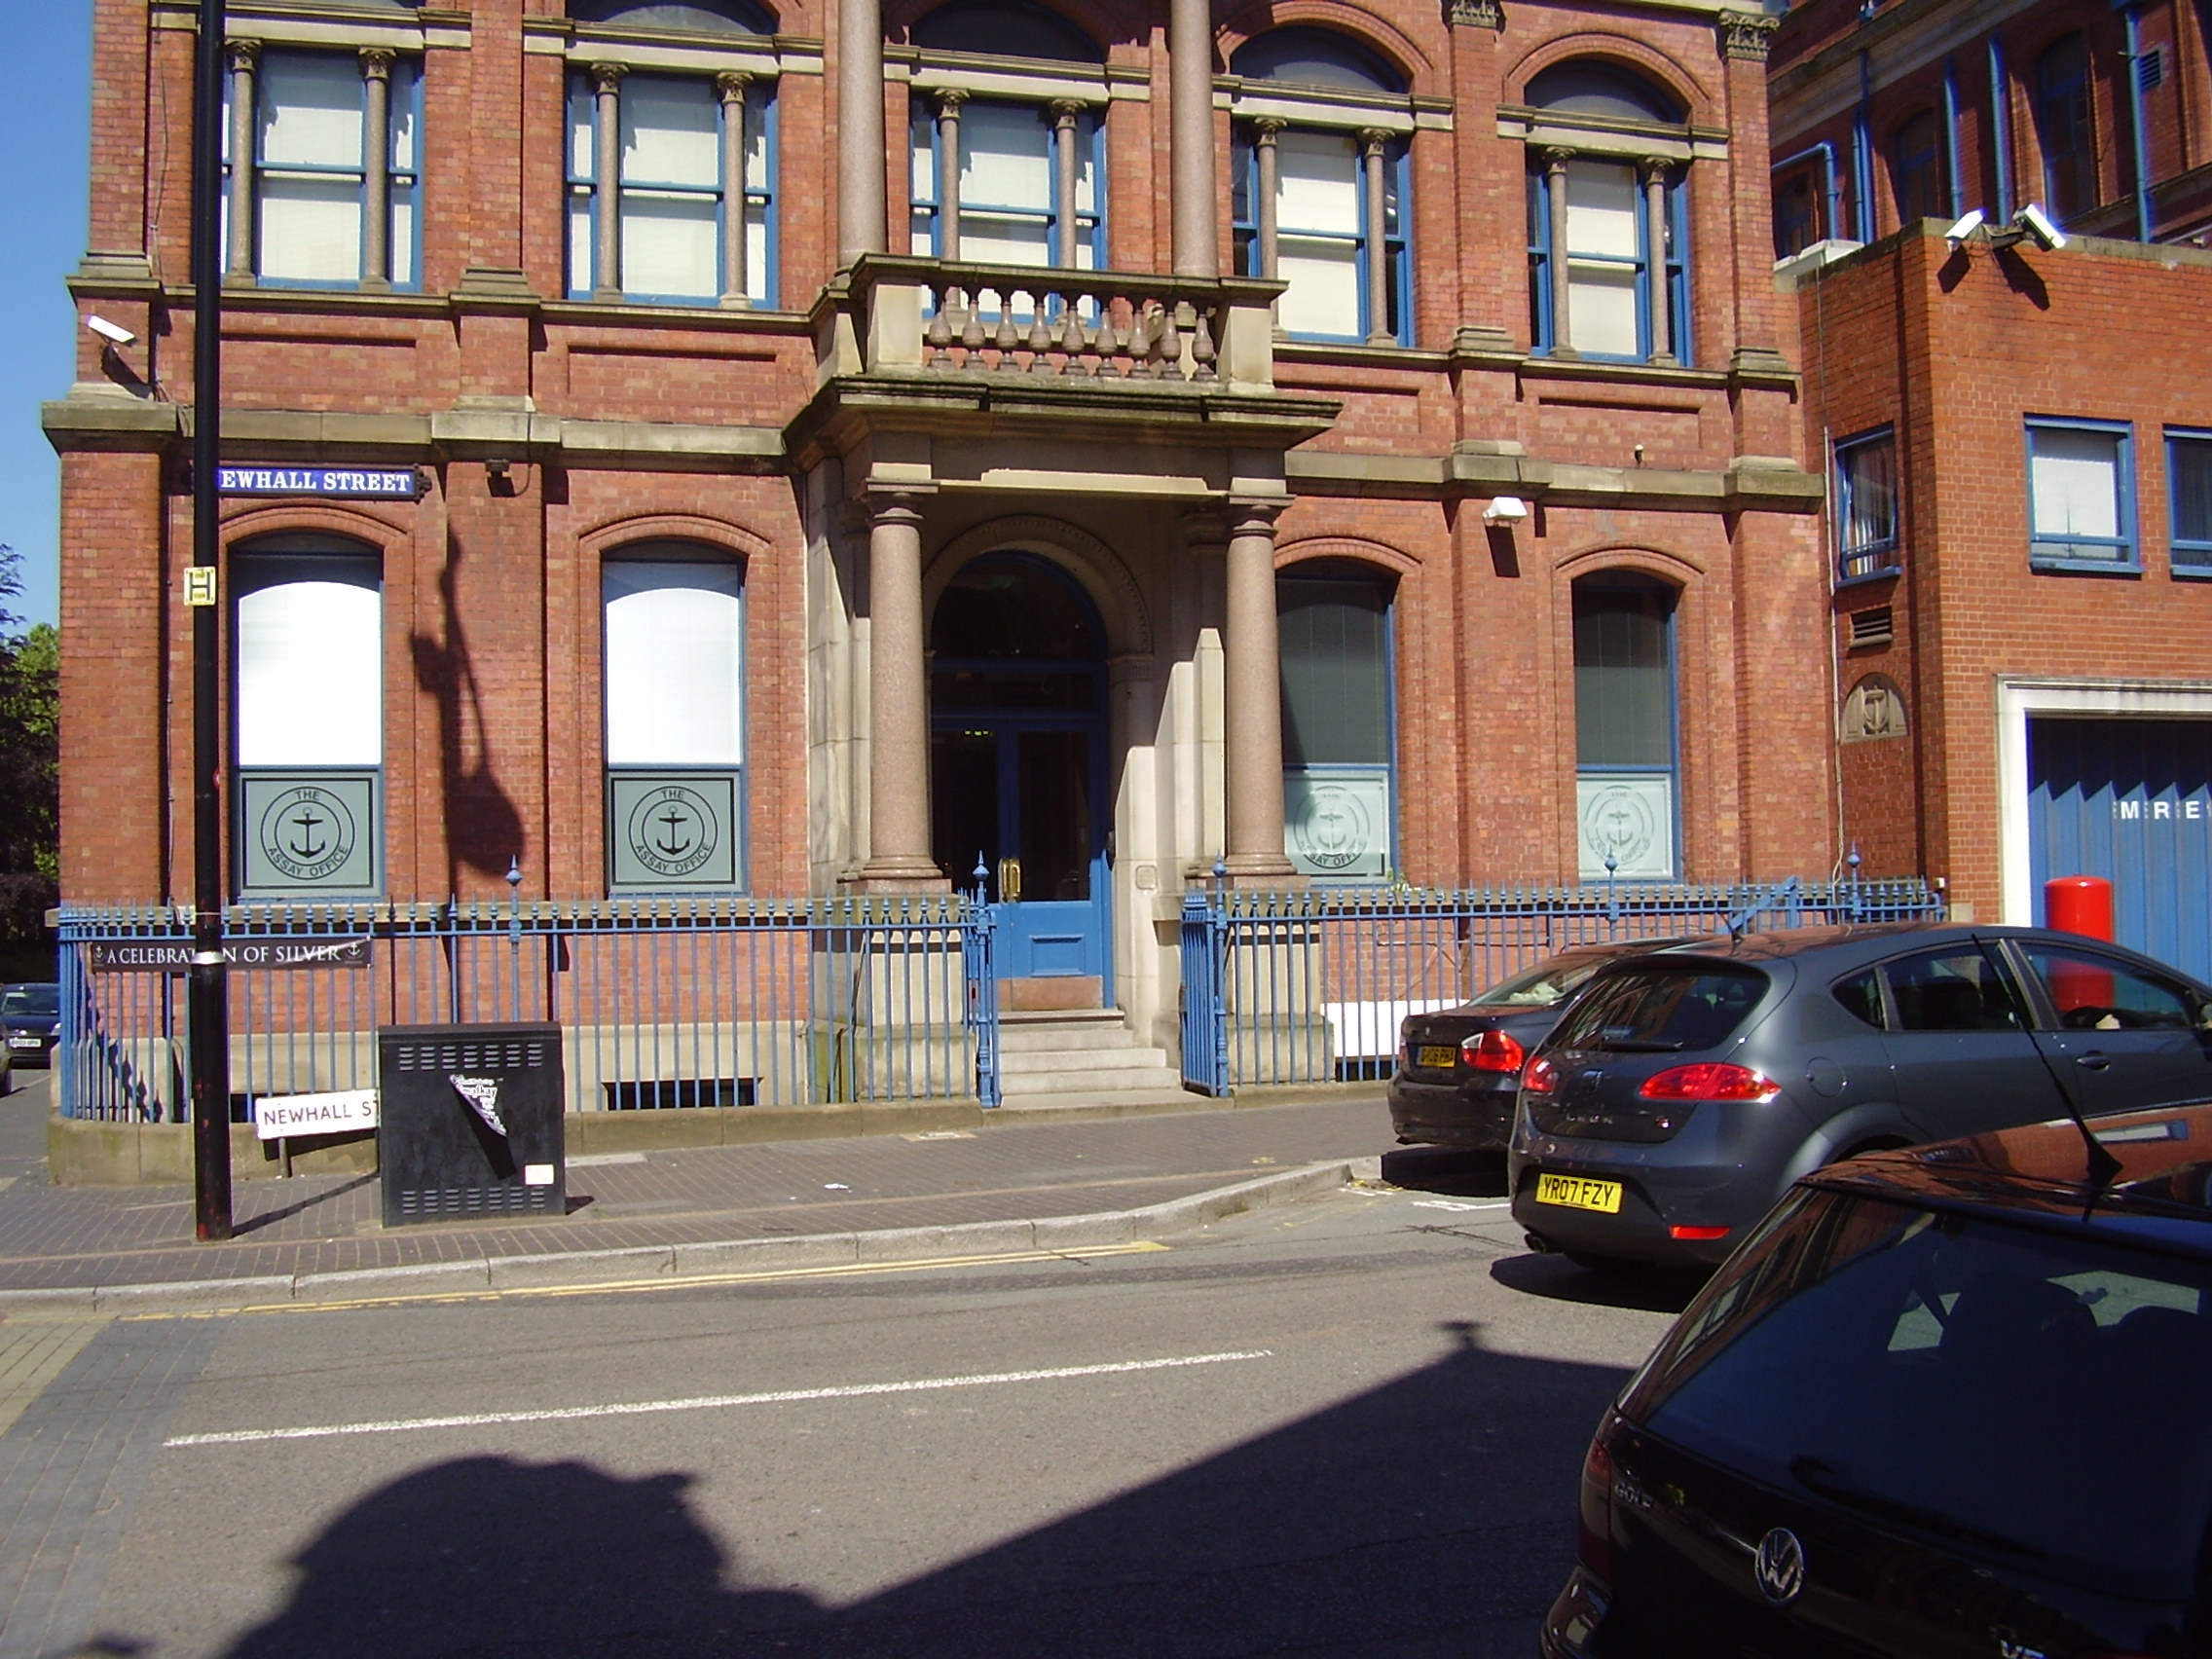 The Birmingham Assay Office Photo 2008 Built 1773 Newhall Street, Jewellery Quarter Birmingham